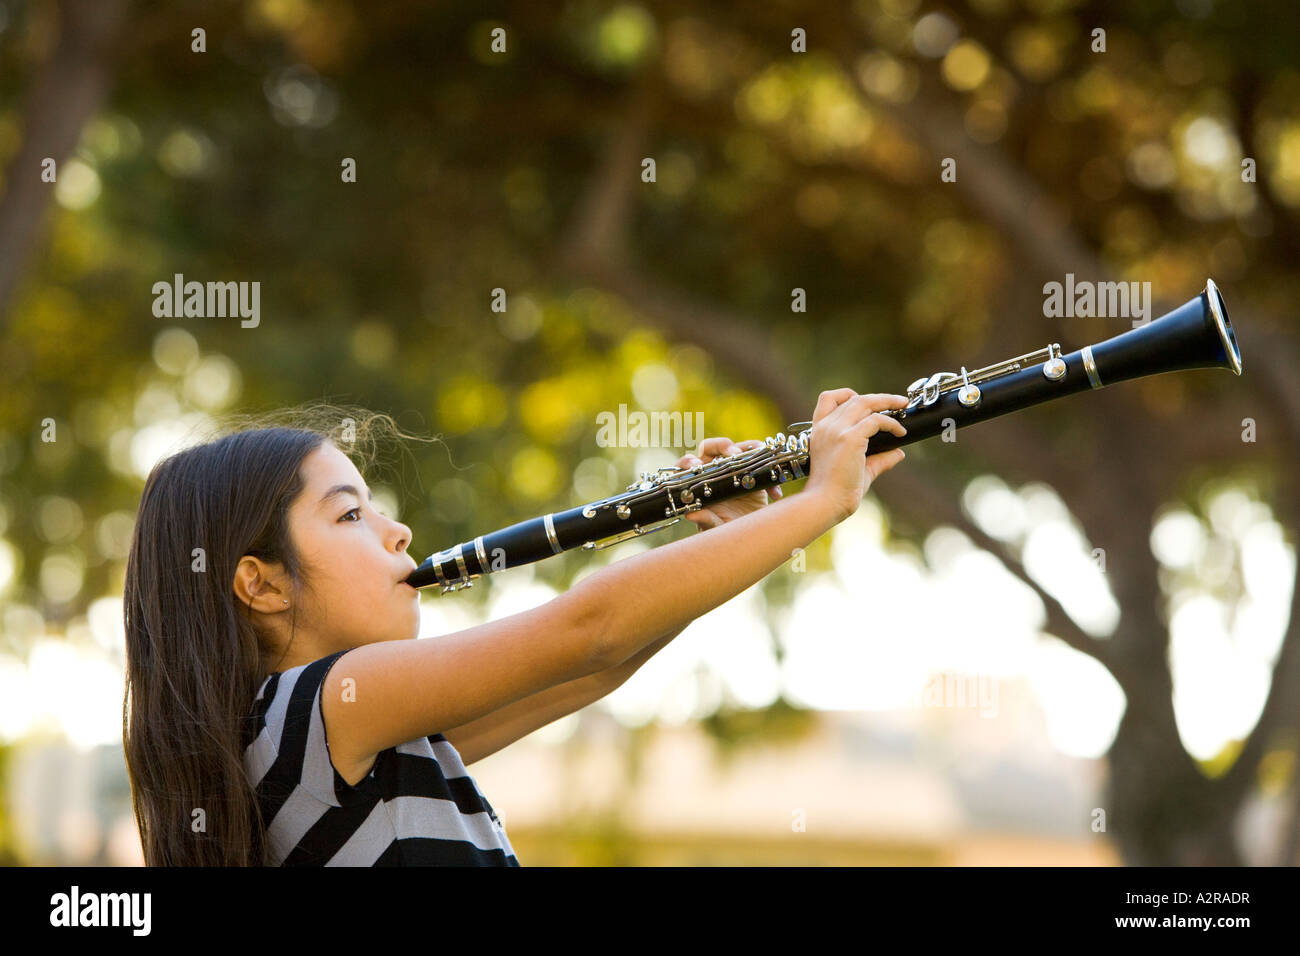 A young girl ten years old plays her clarinet in a park Los Angeles California Model Released - Stock Image